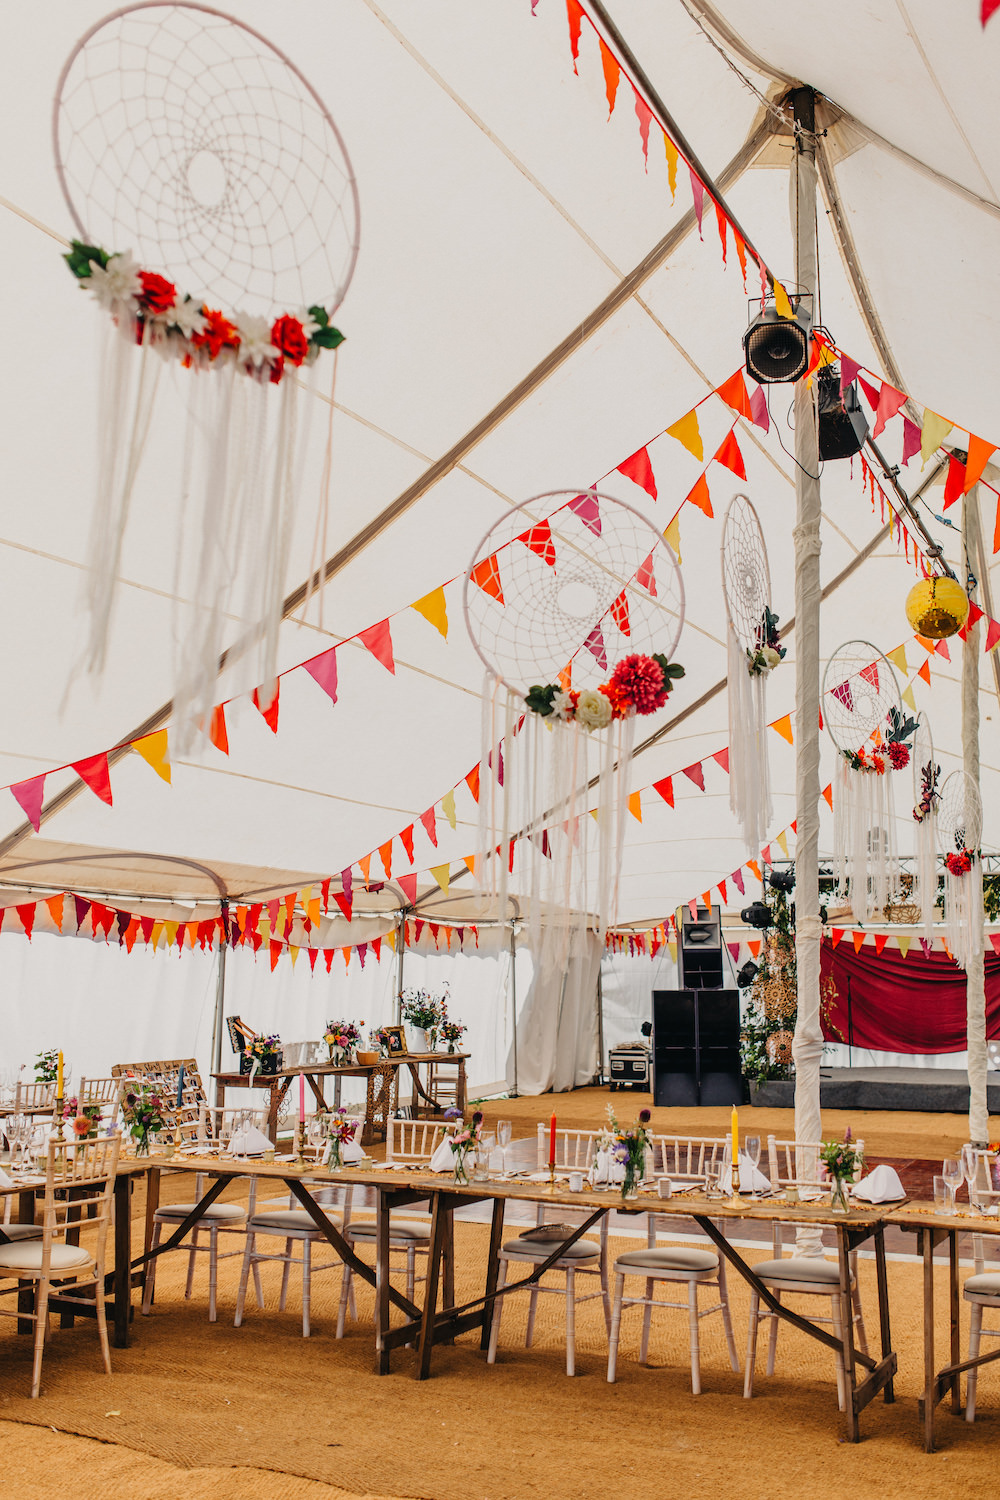 Party Tent Marquee Summer Festival